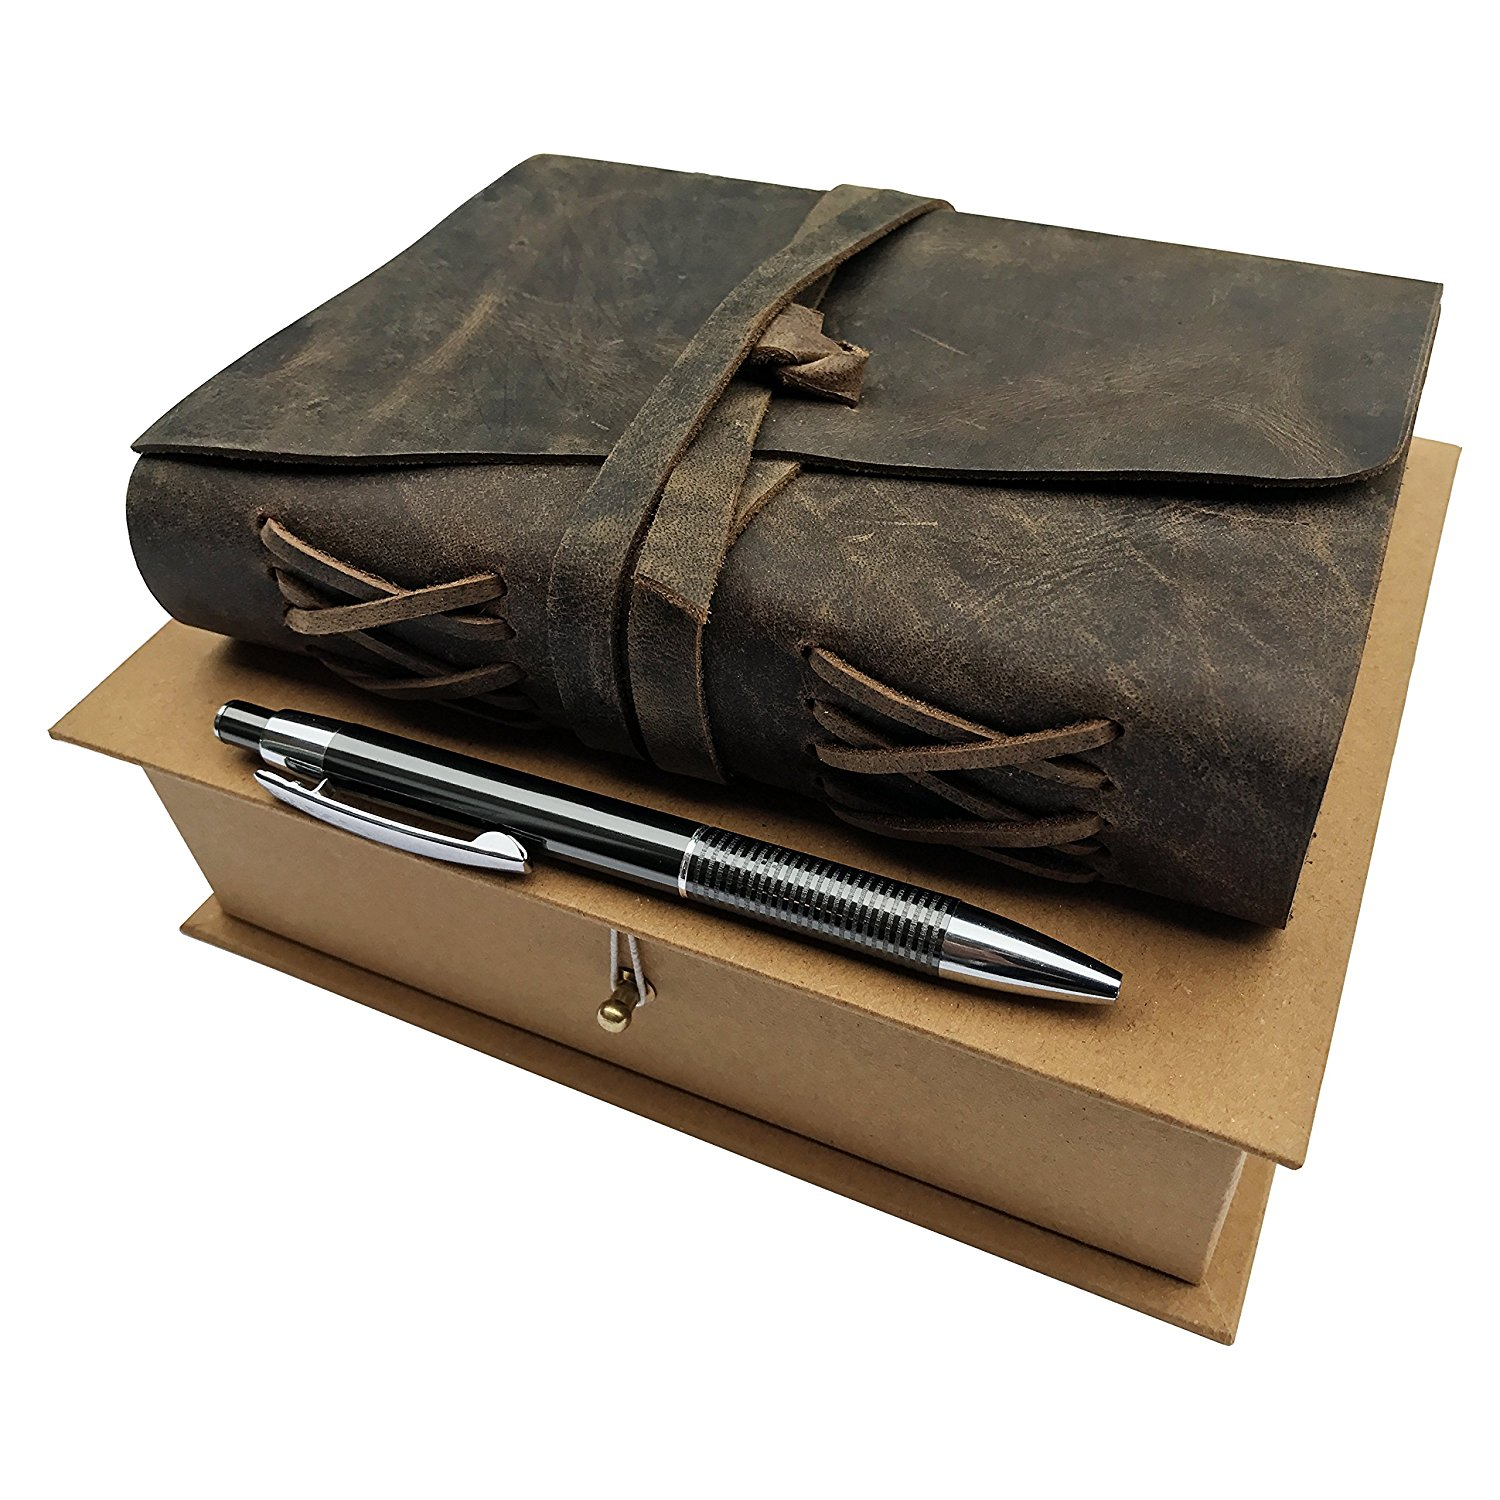 Leather Journal Gift Set by Moonster Image